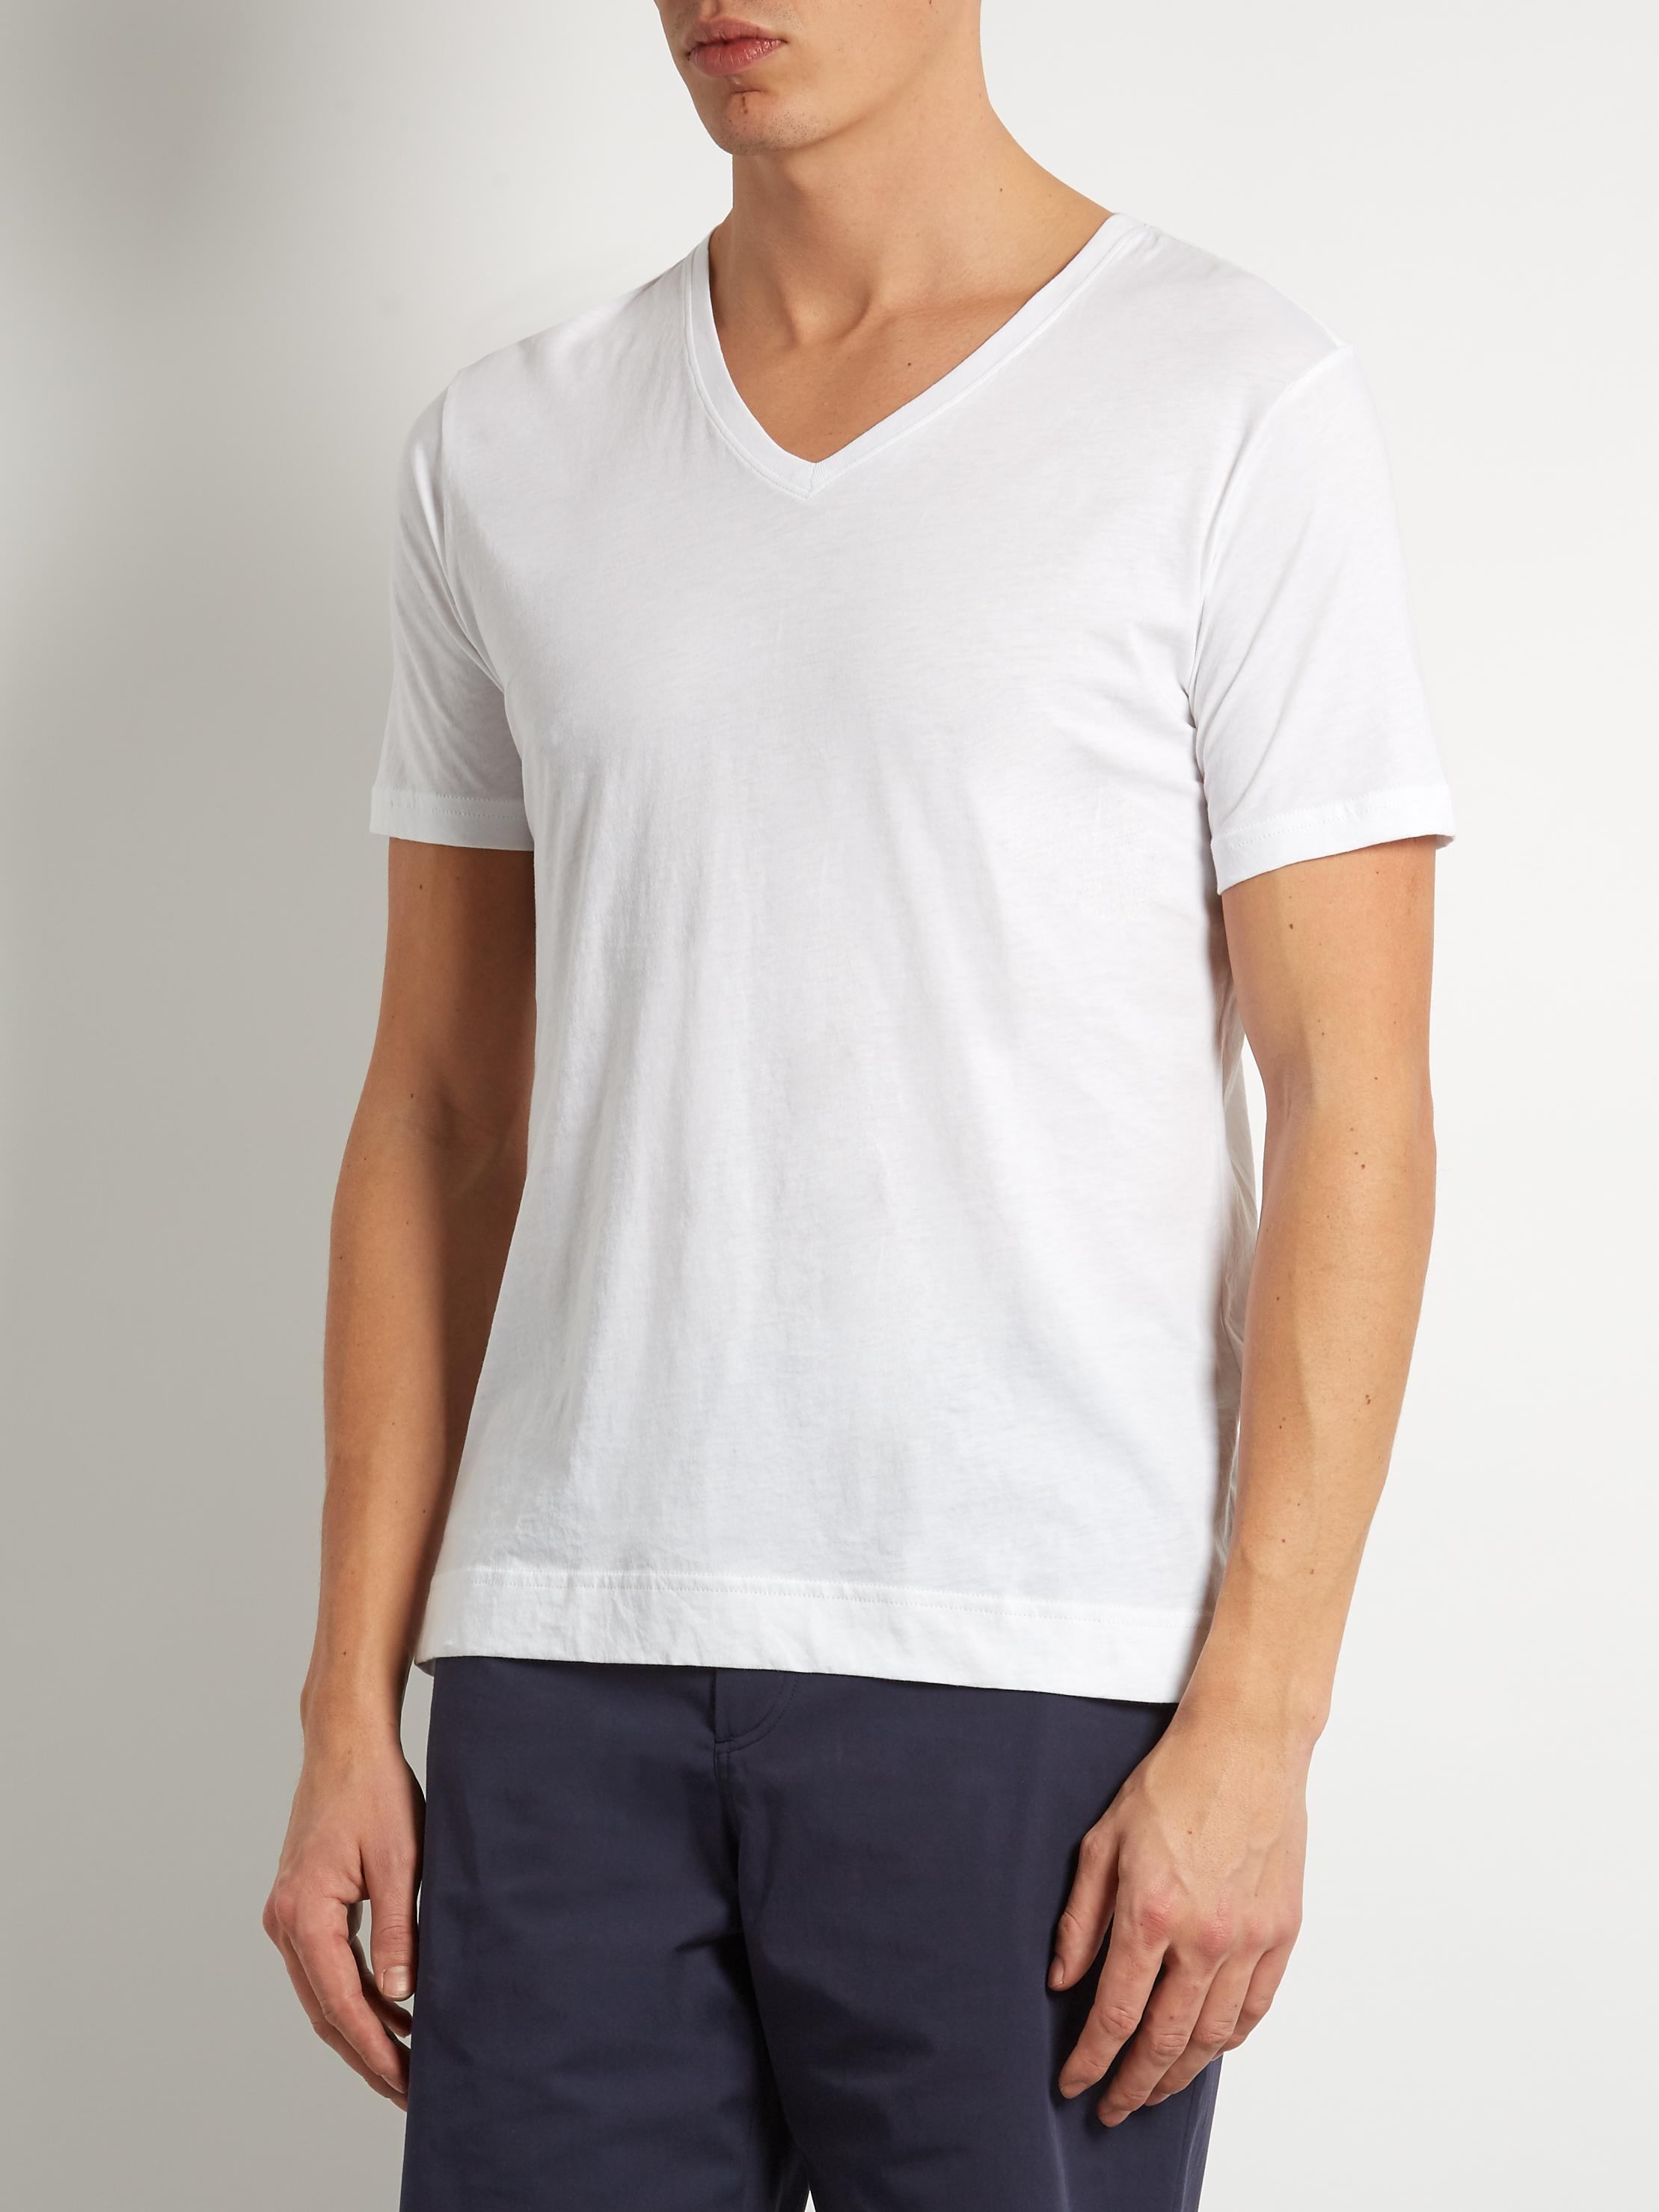 Lyst adam lippes v neck cotton t shirt in white for men for Adam lippes t shirt